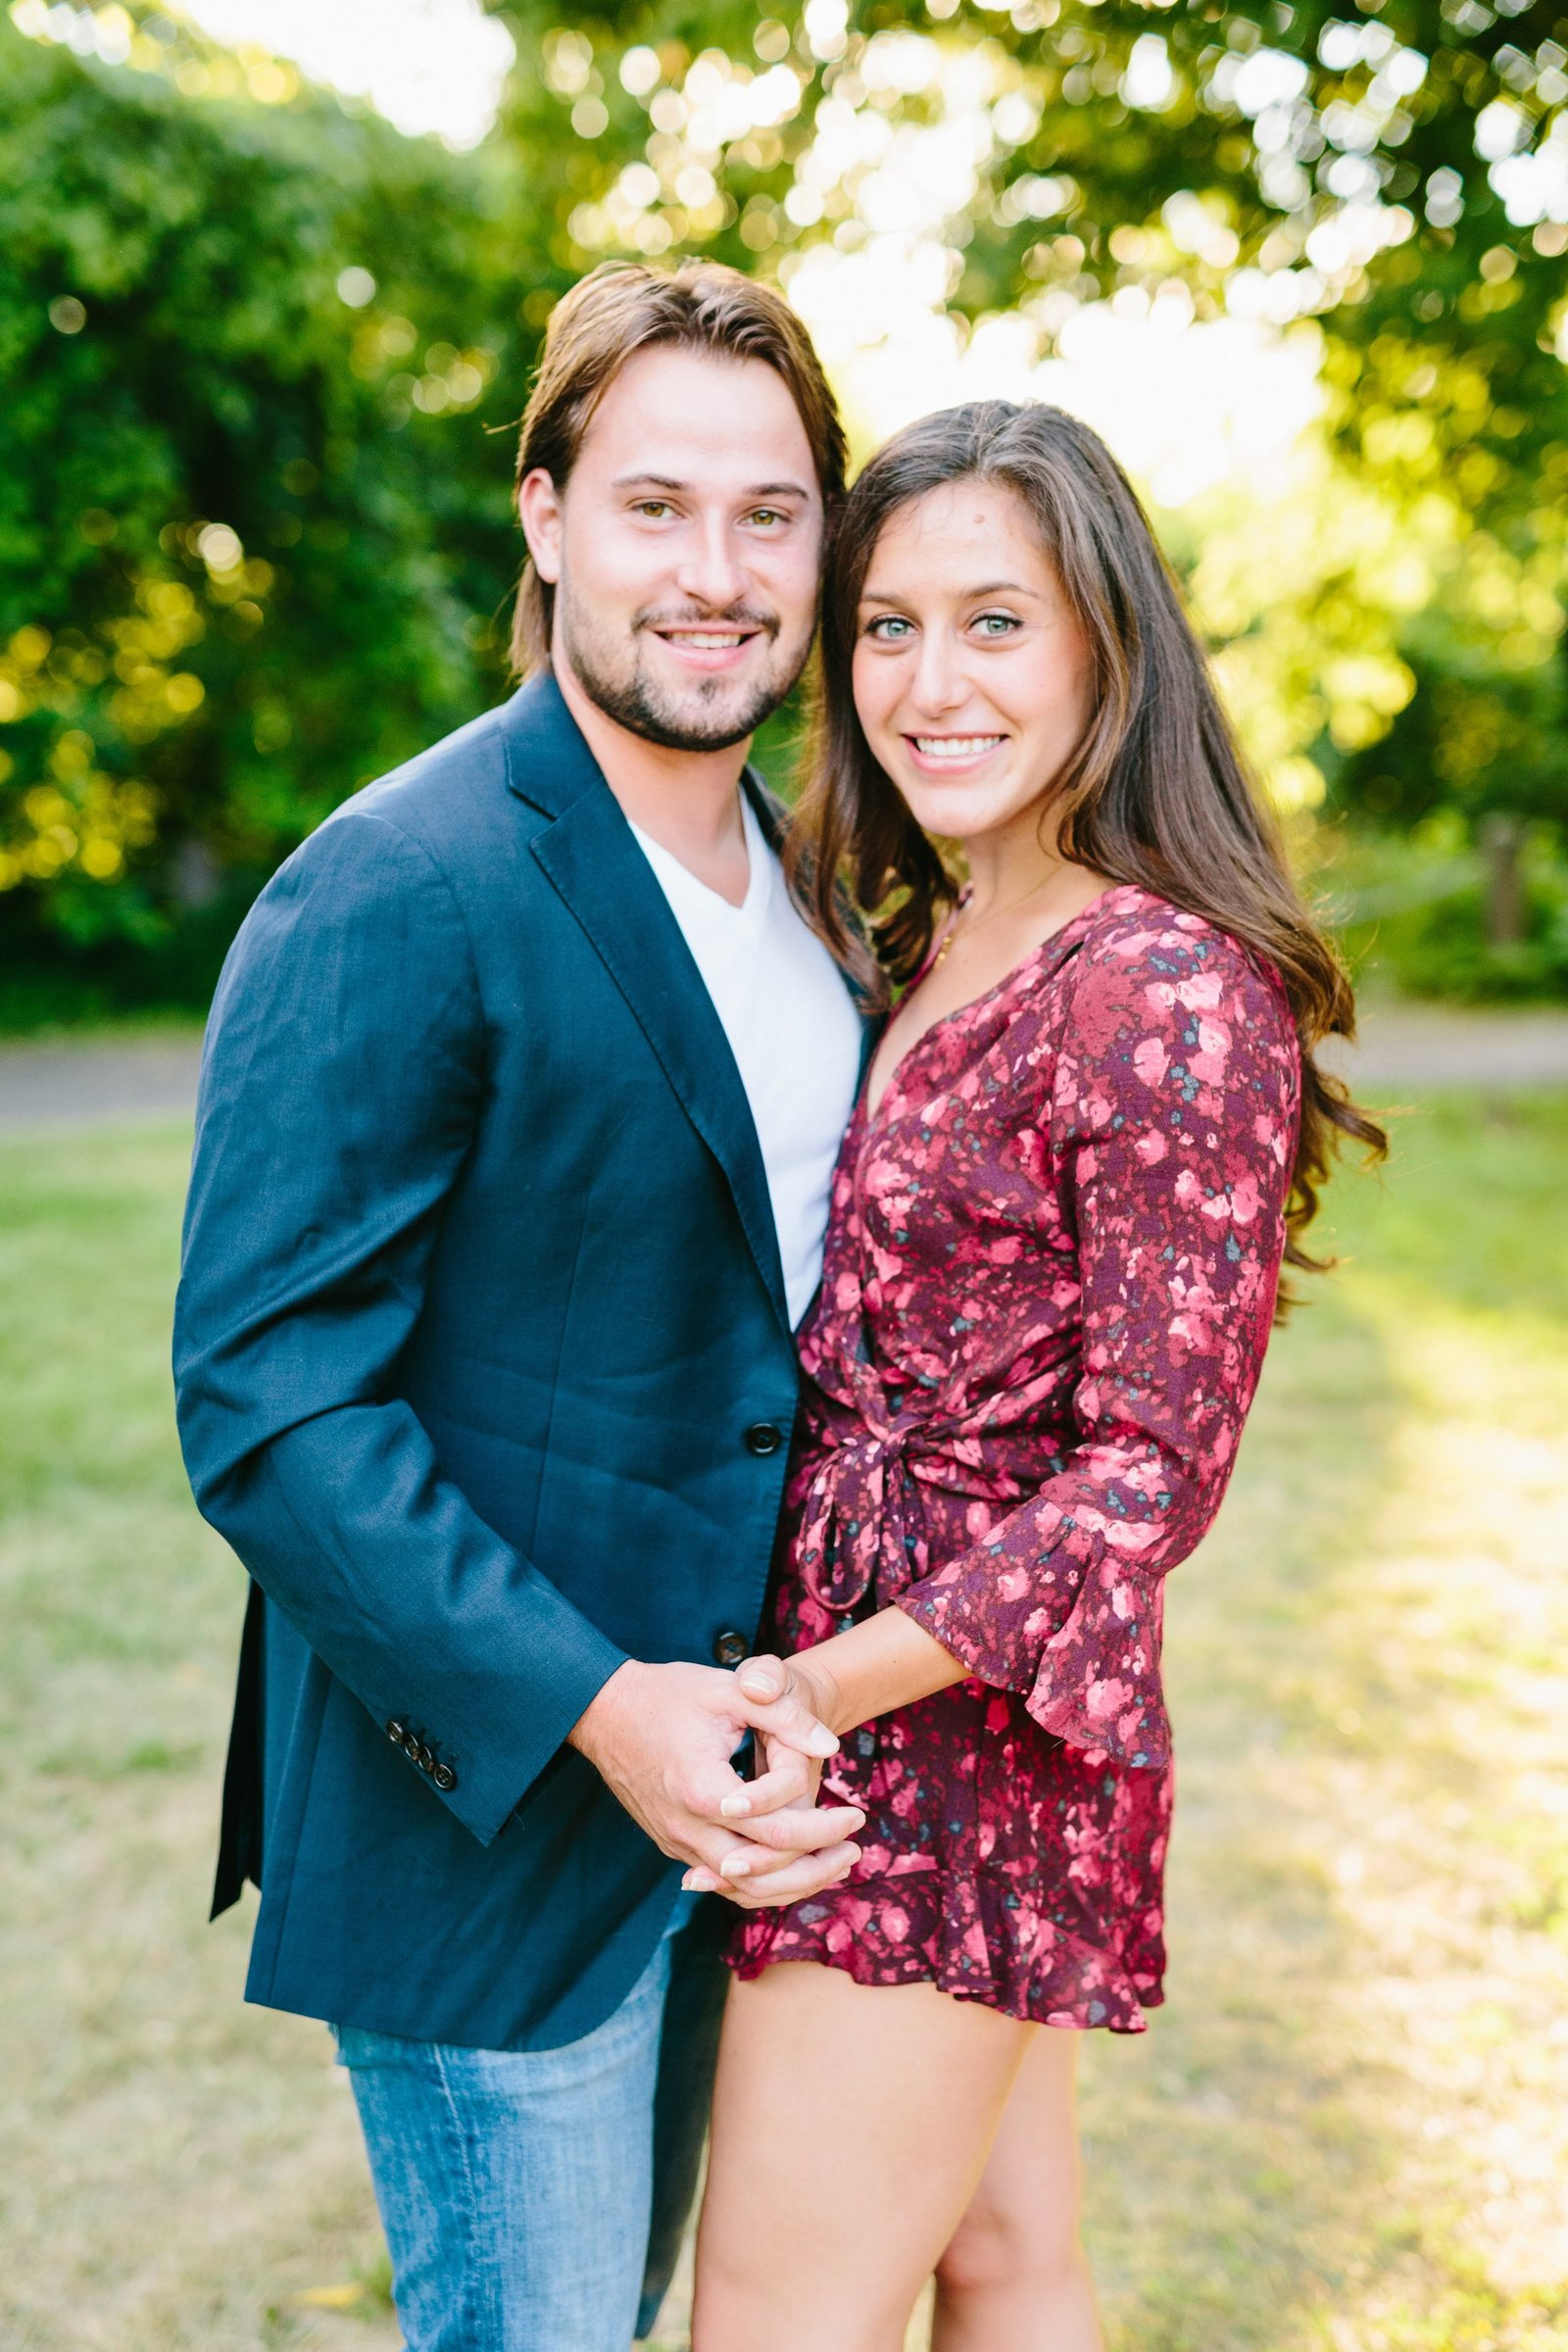 Engagement Photos-Jodee Debes Photography-233